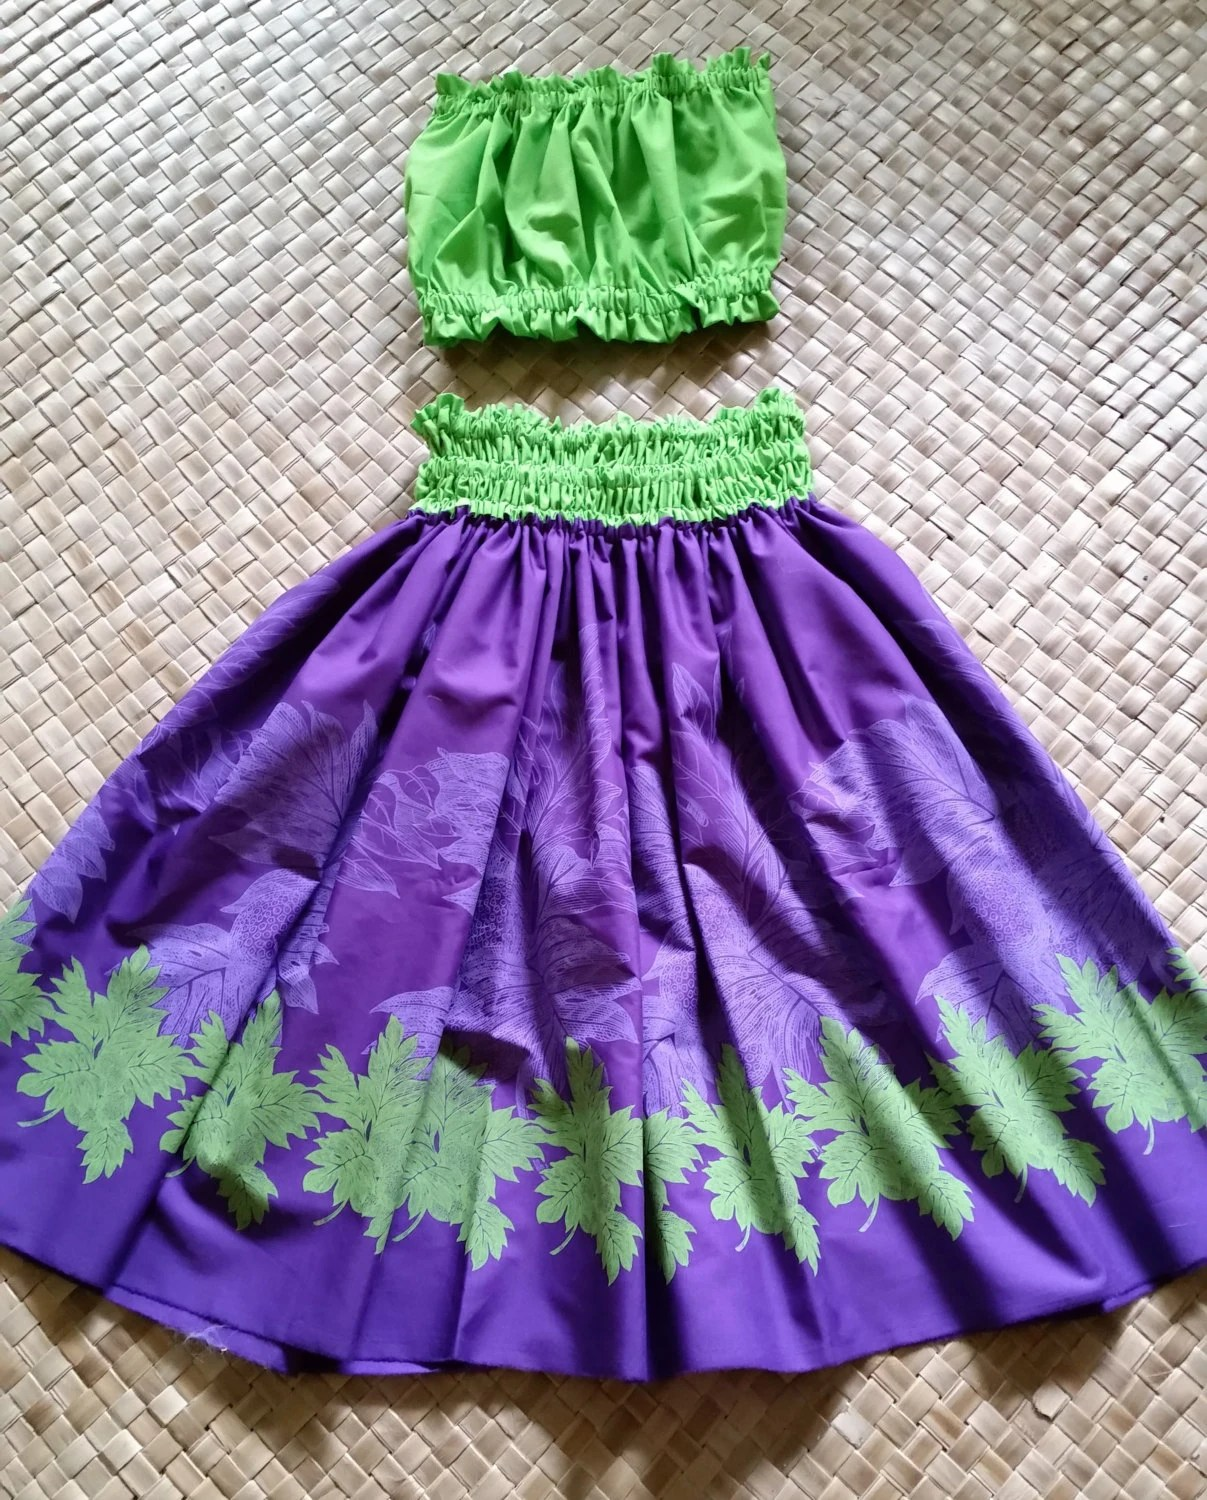 Royal Purple And Lime Green For A Splash Of Color In A Bright